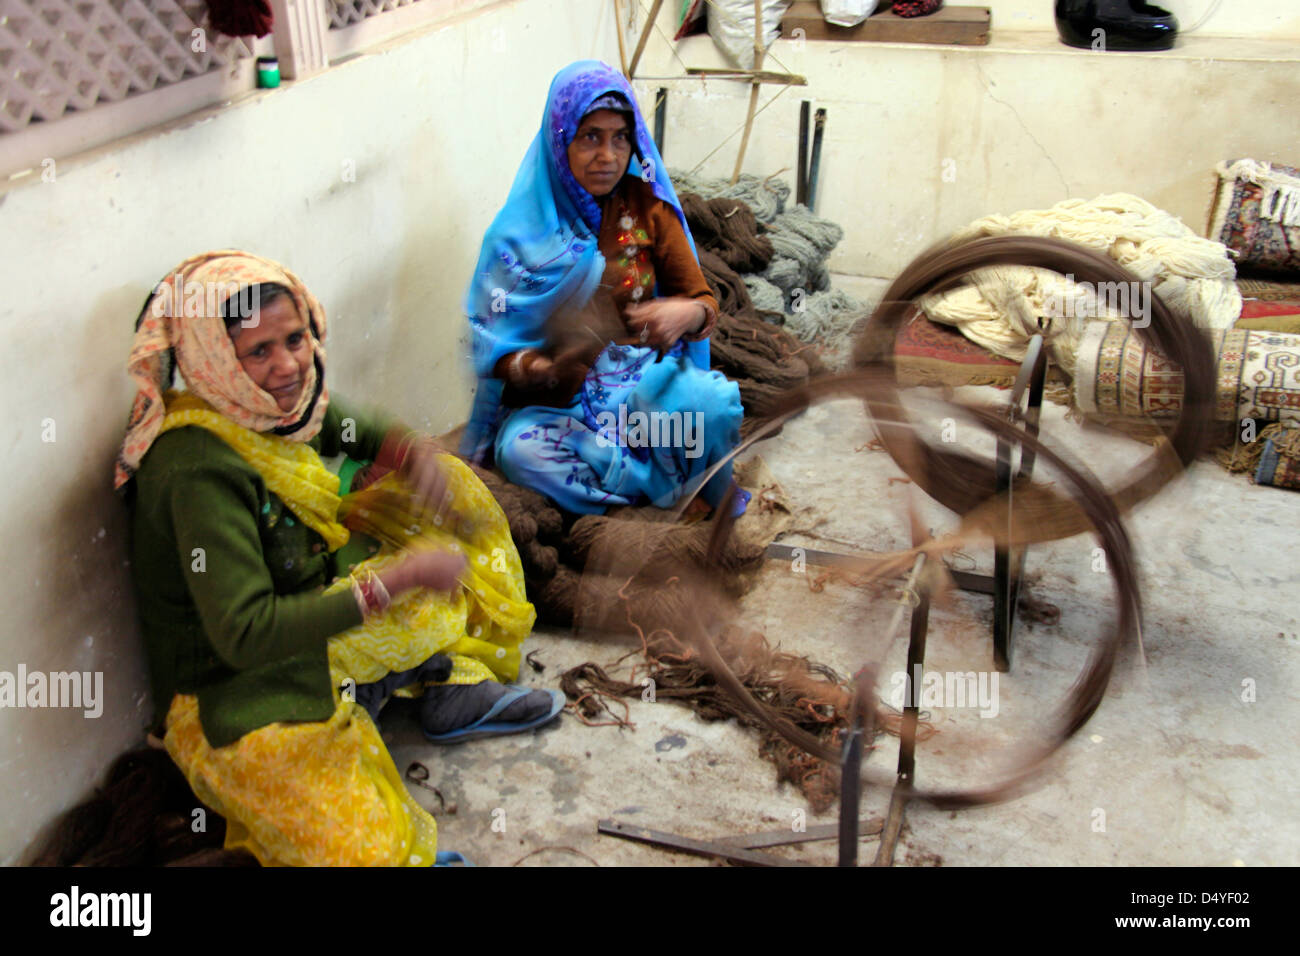 India, Jaipur. Indian women spinning wool for use in making carpets. - Stock Image